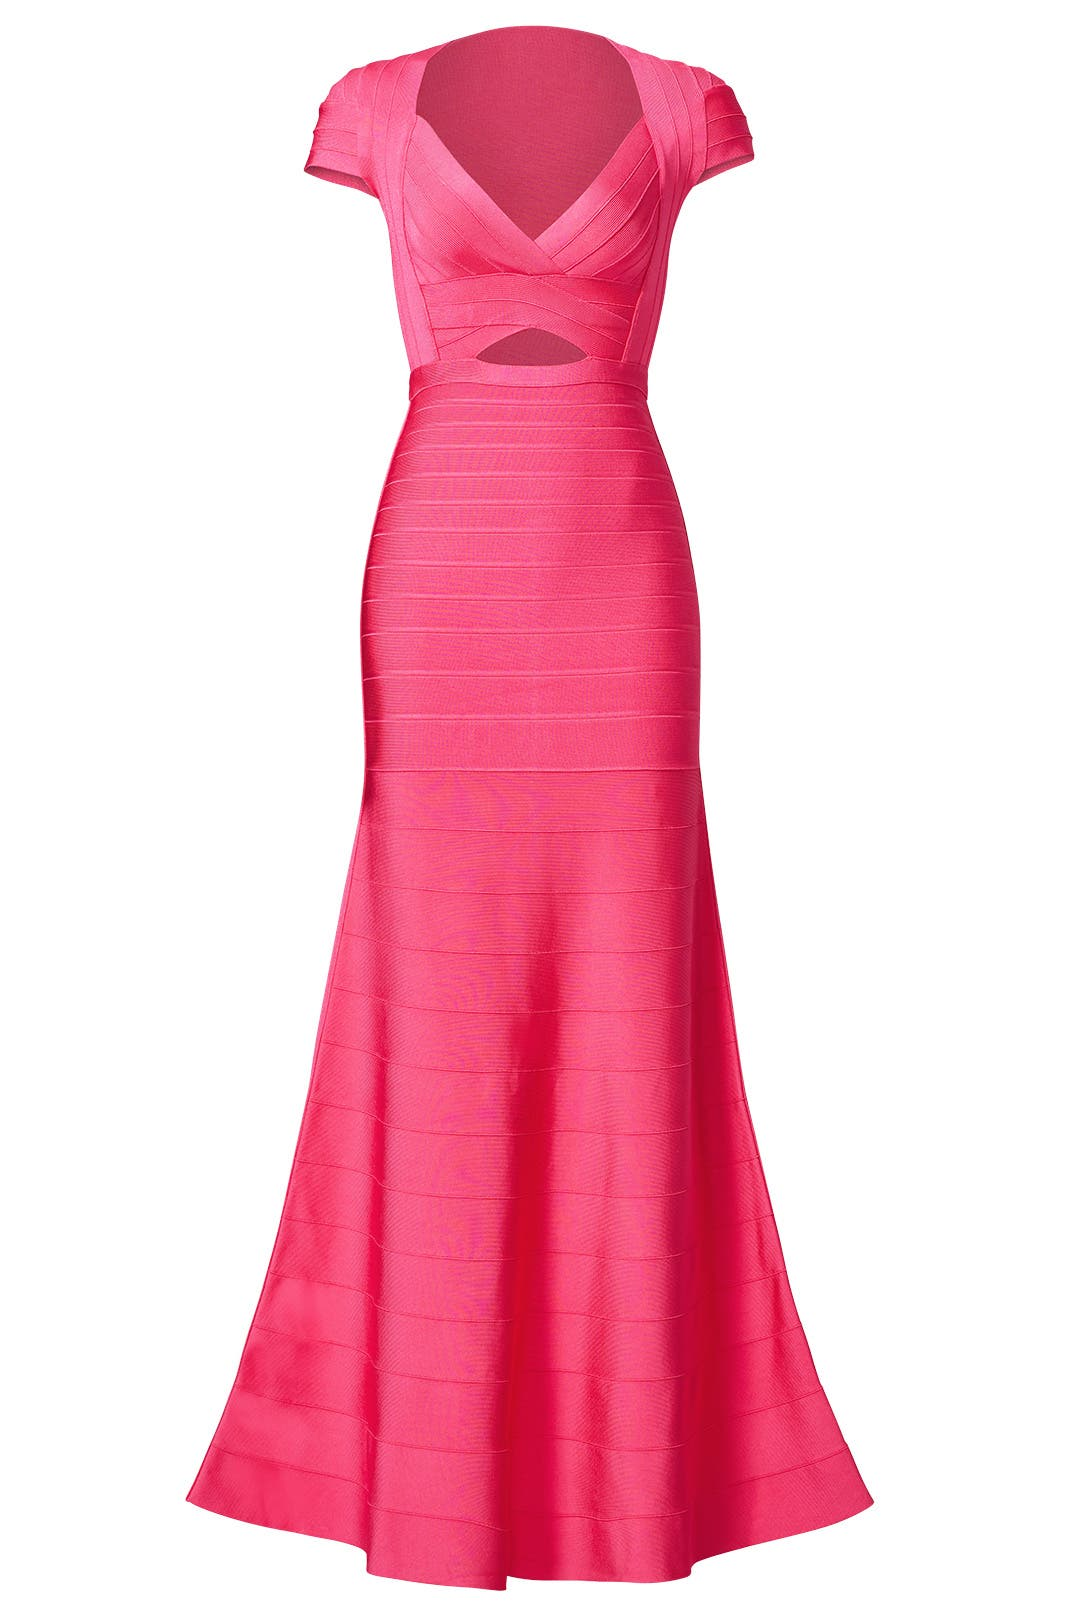 Pink Diamond Cutout Gown by Hervé Léger for $150 - $160   Rent the ...